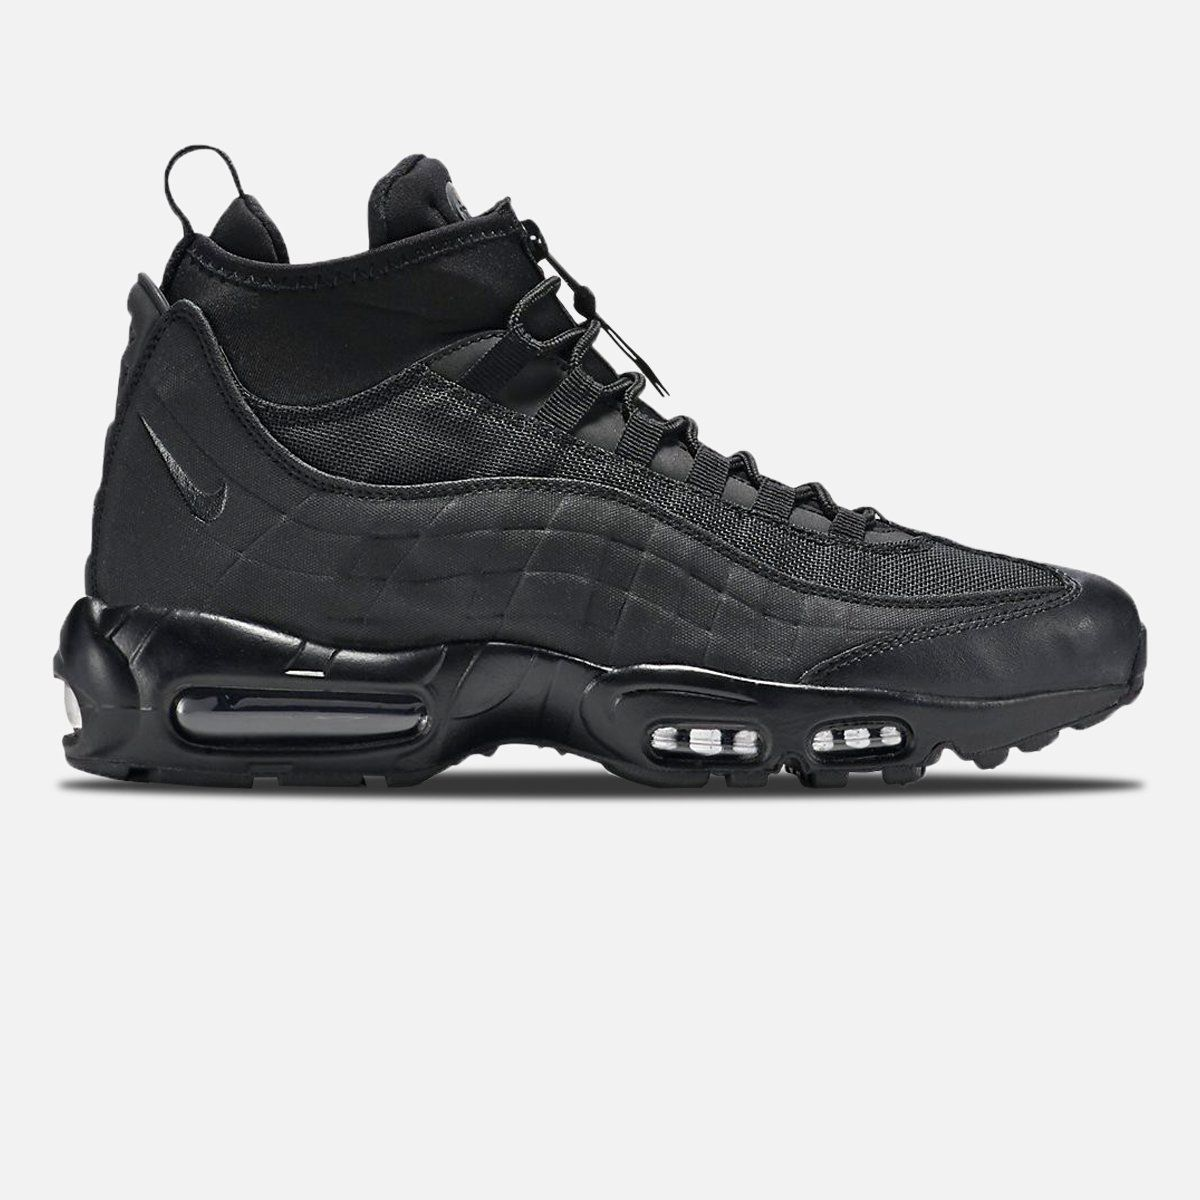 Nike Air Max 95 Sneakerboot Green Grey Black Outlet